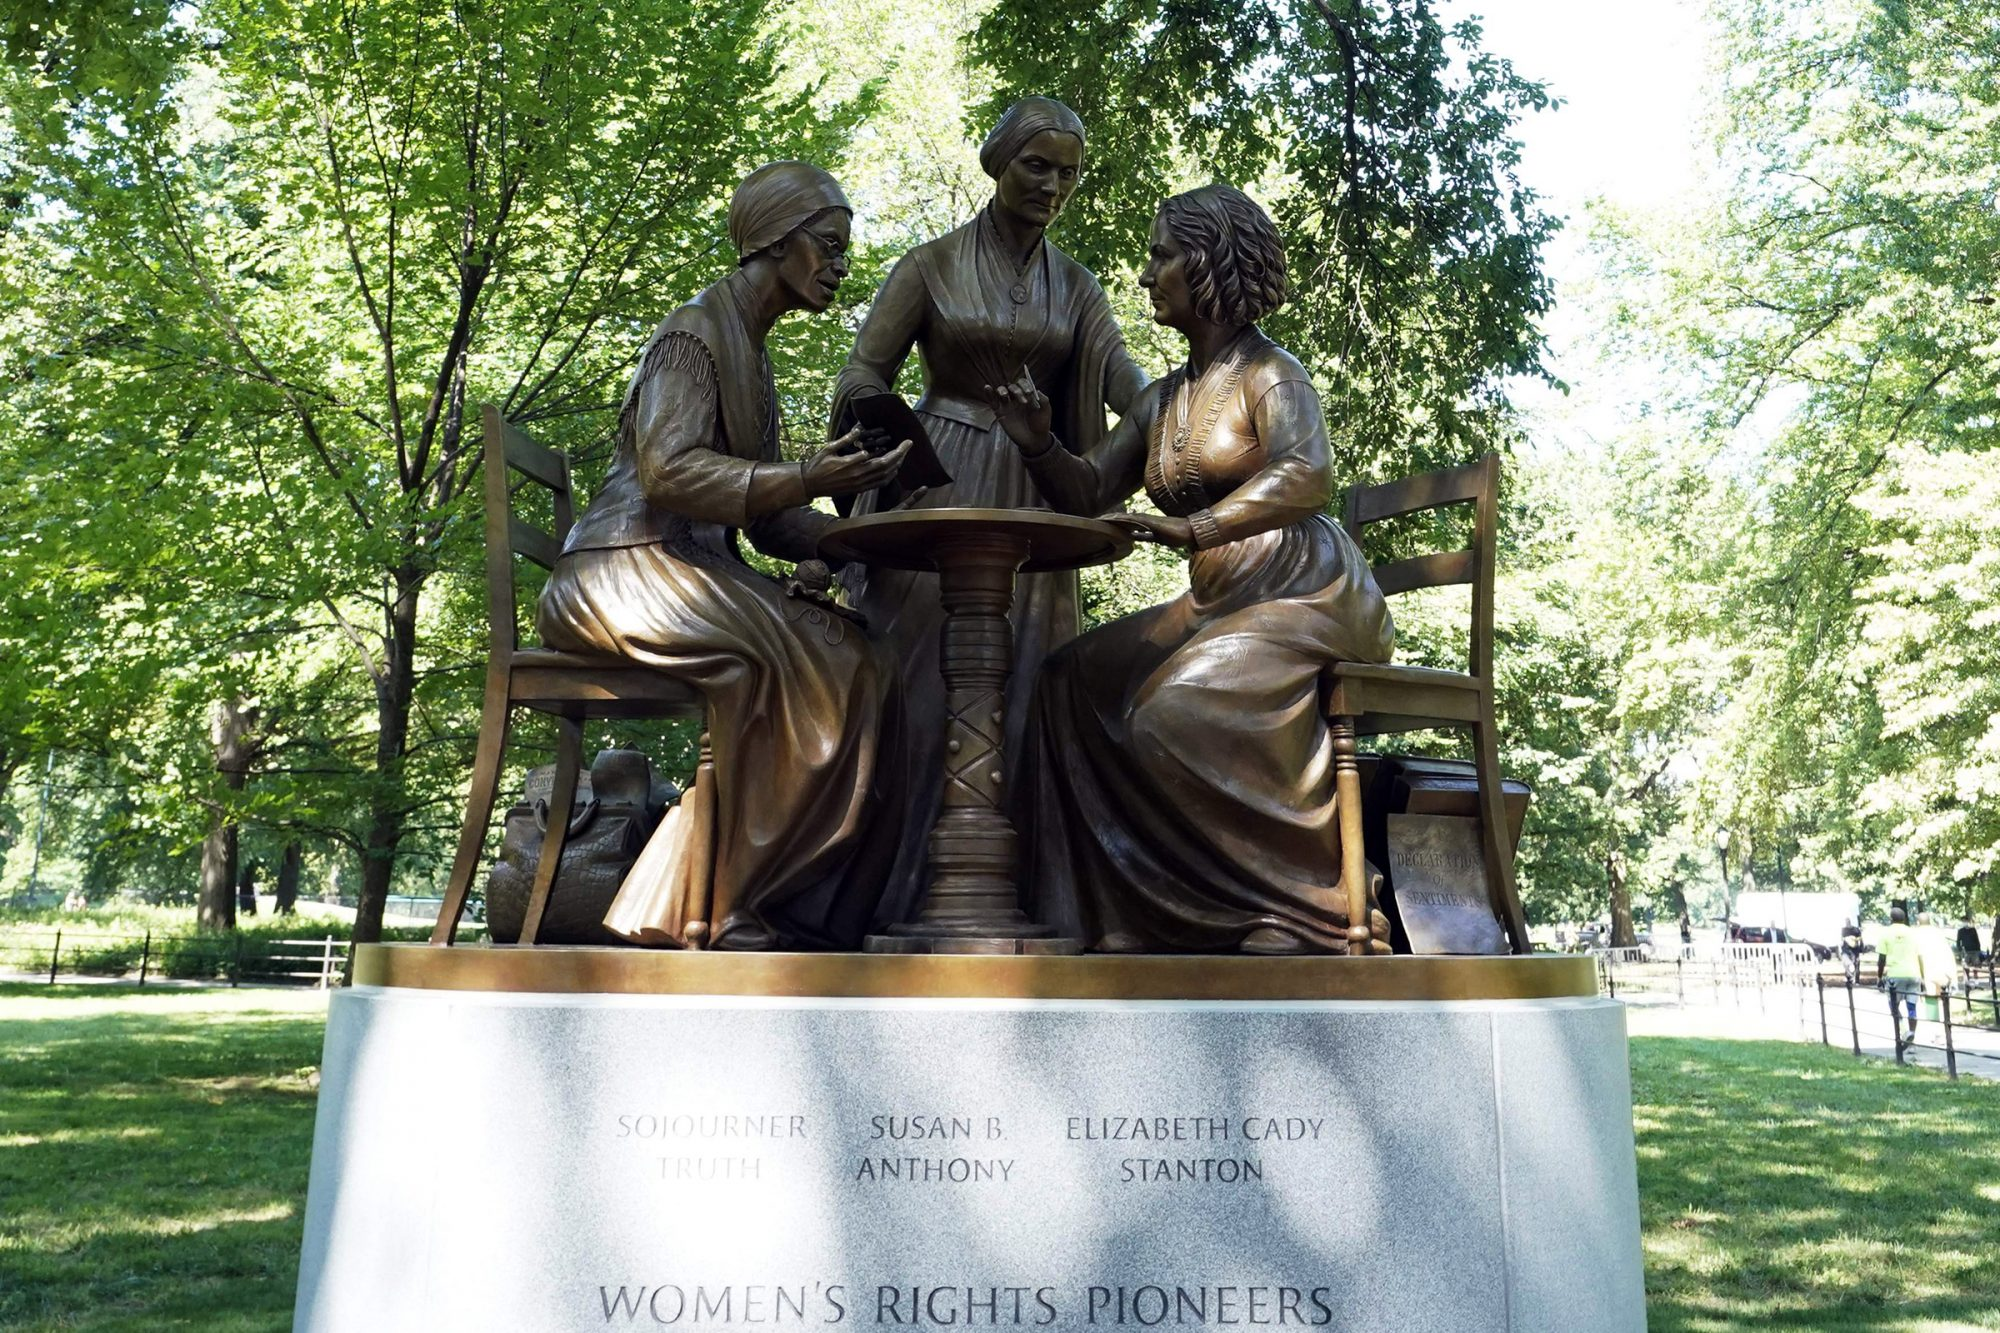 The unveiling of the statue of women's rights pioneers Susan B. Anthony, Elizabeth Cady Stanton and Sojourner Truth is seen in Central Park in New York on August 26, 2020